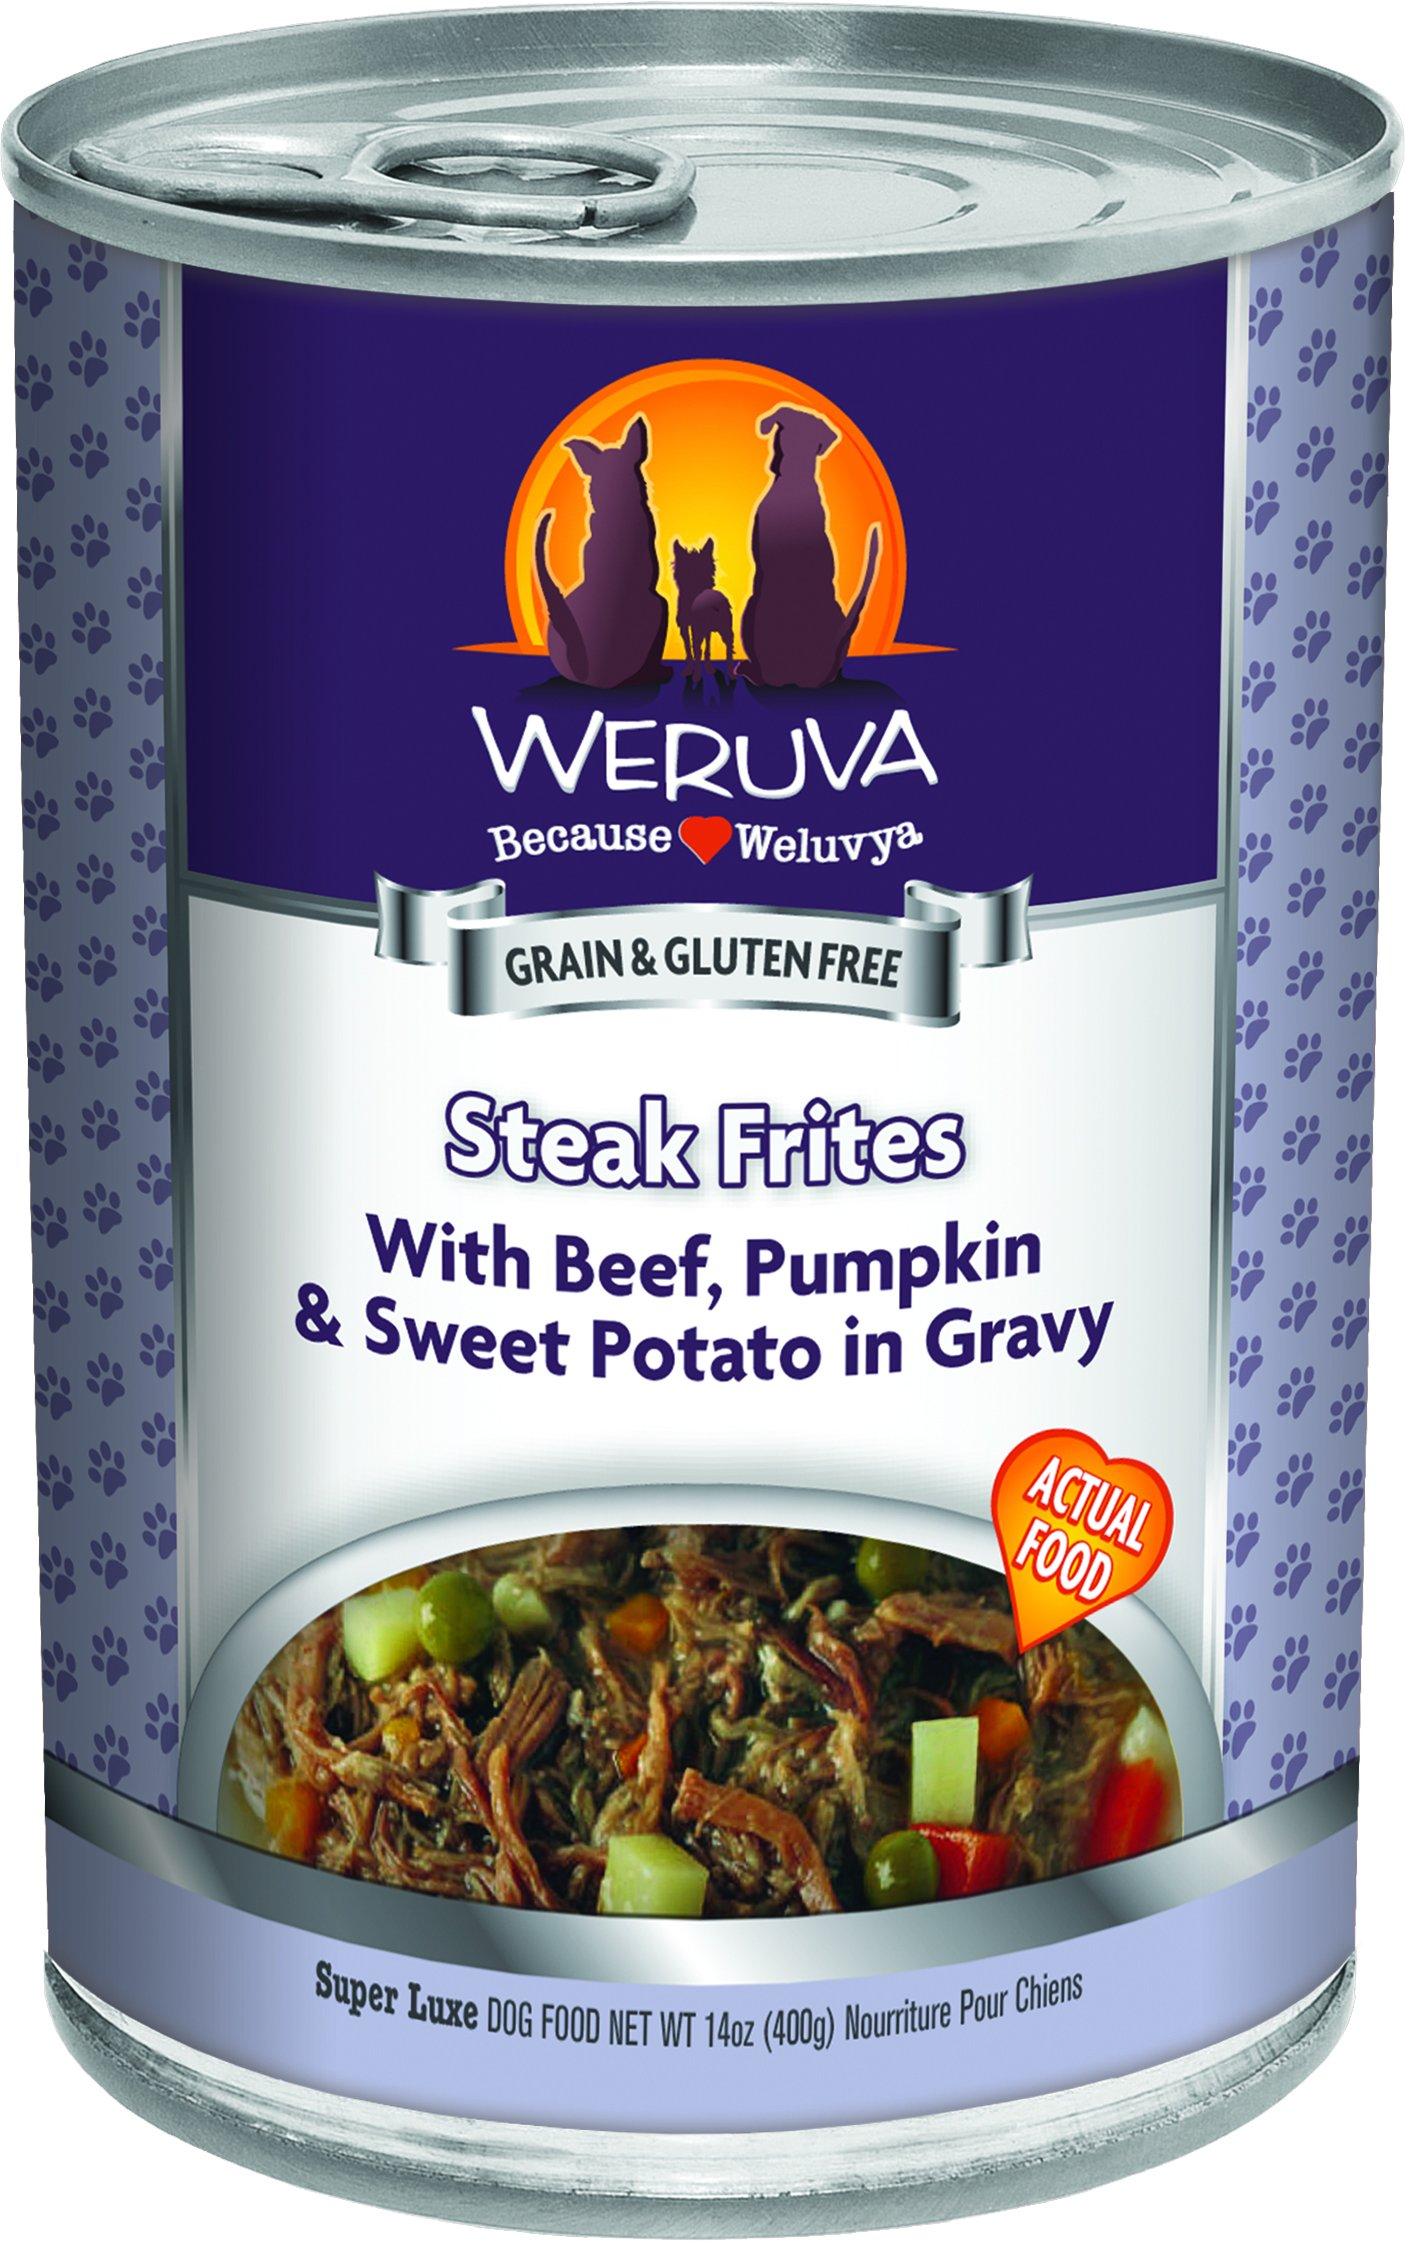 Weruva Classic Dog Food, Steak Frites with Beef, Pumpkin & Sweet Potato in Gravy, 14oz Can (Pack of 12)